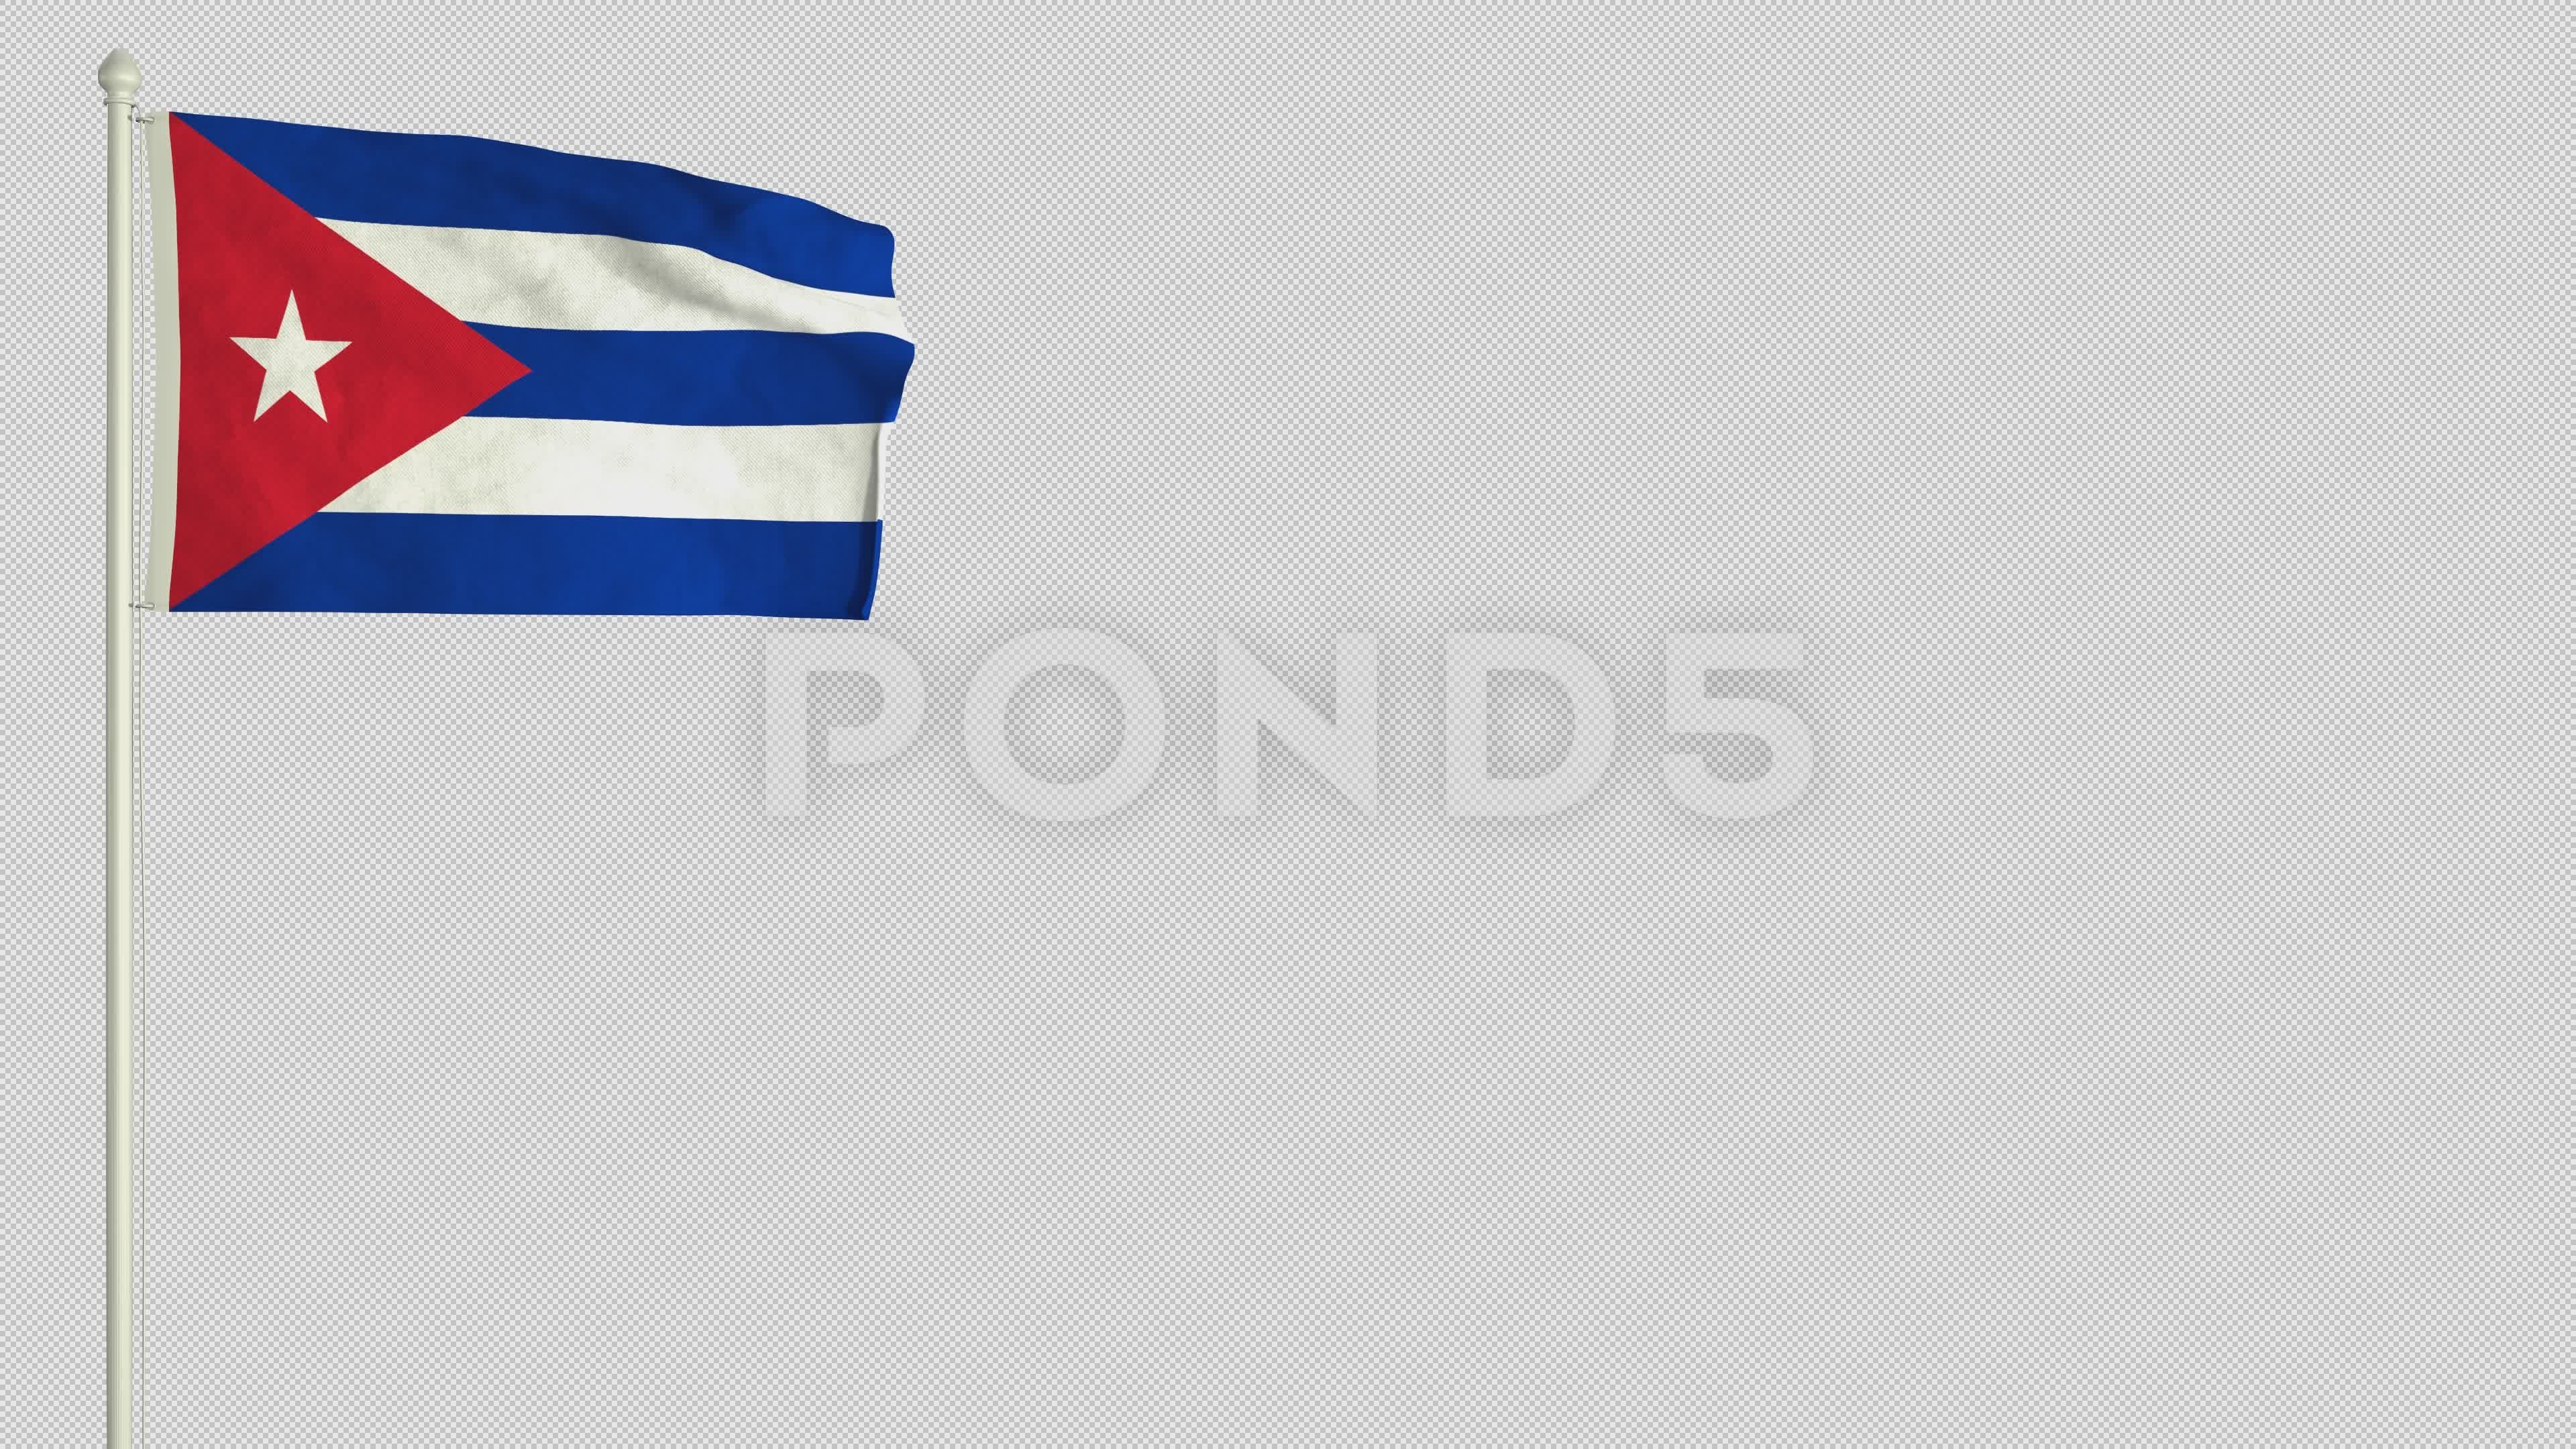 Cuban Flag Waving In The Wind With Png Alpha Channel Stock Footage Waving Wind Cuban Flag Cuban Flag Flag Wind